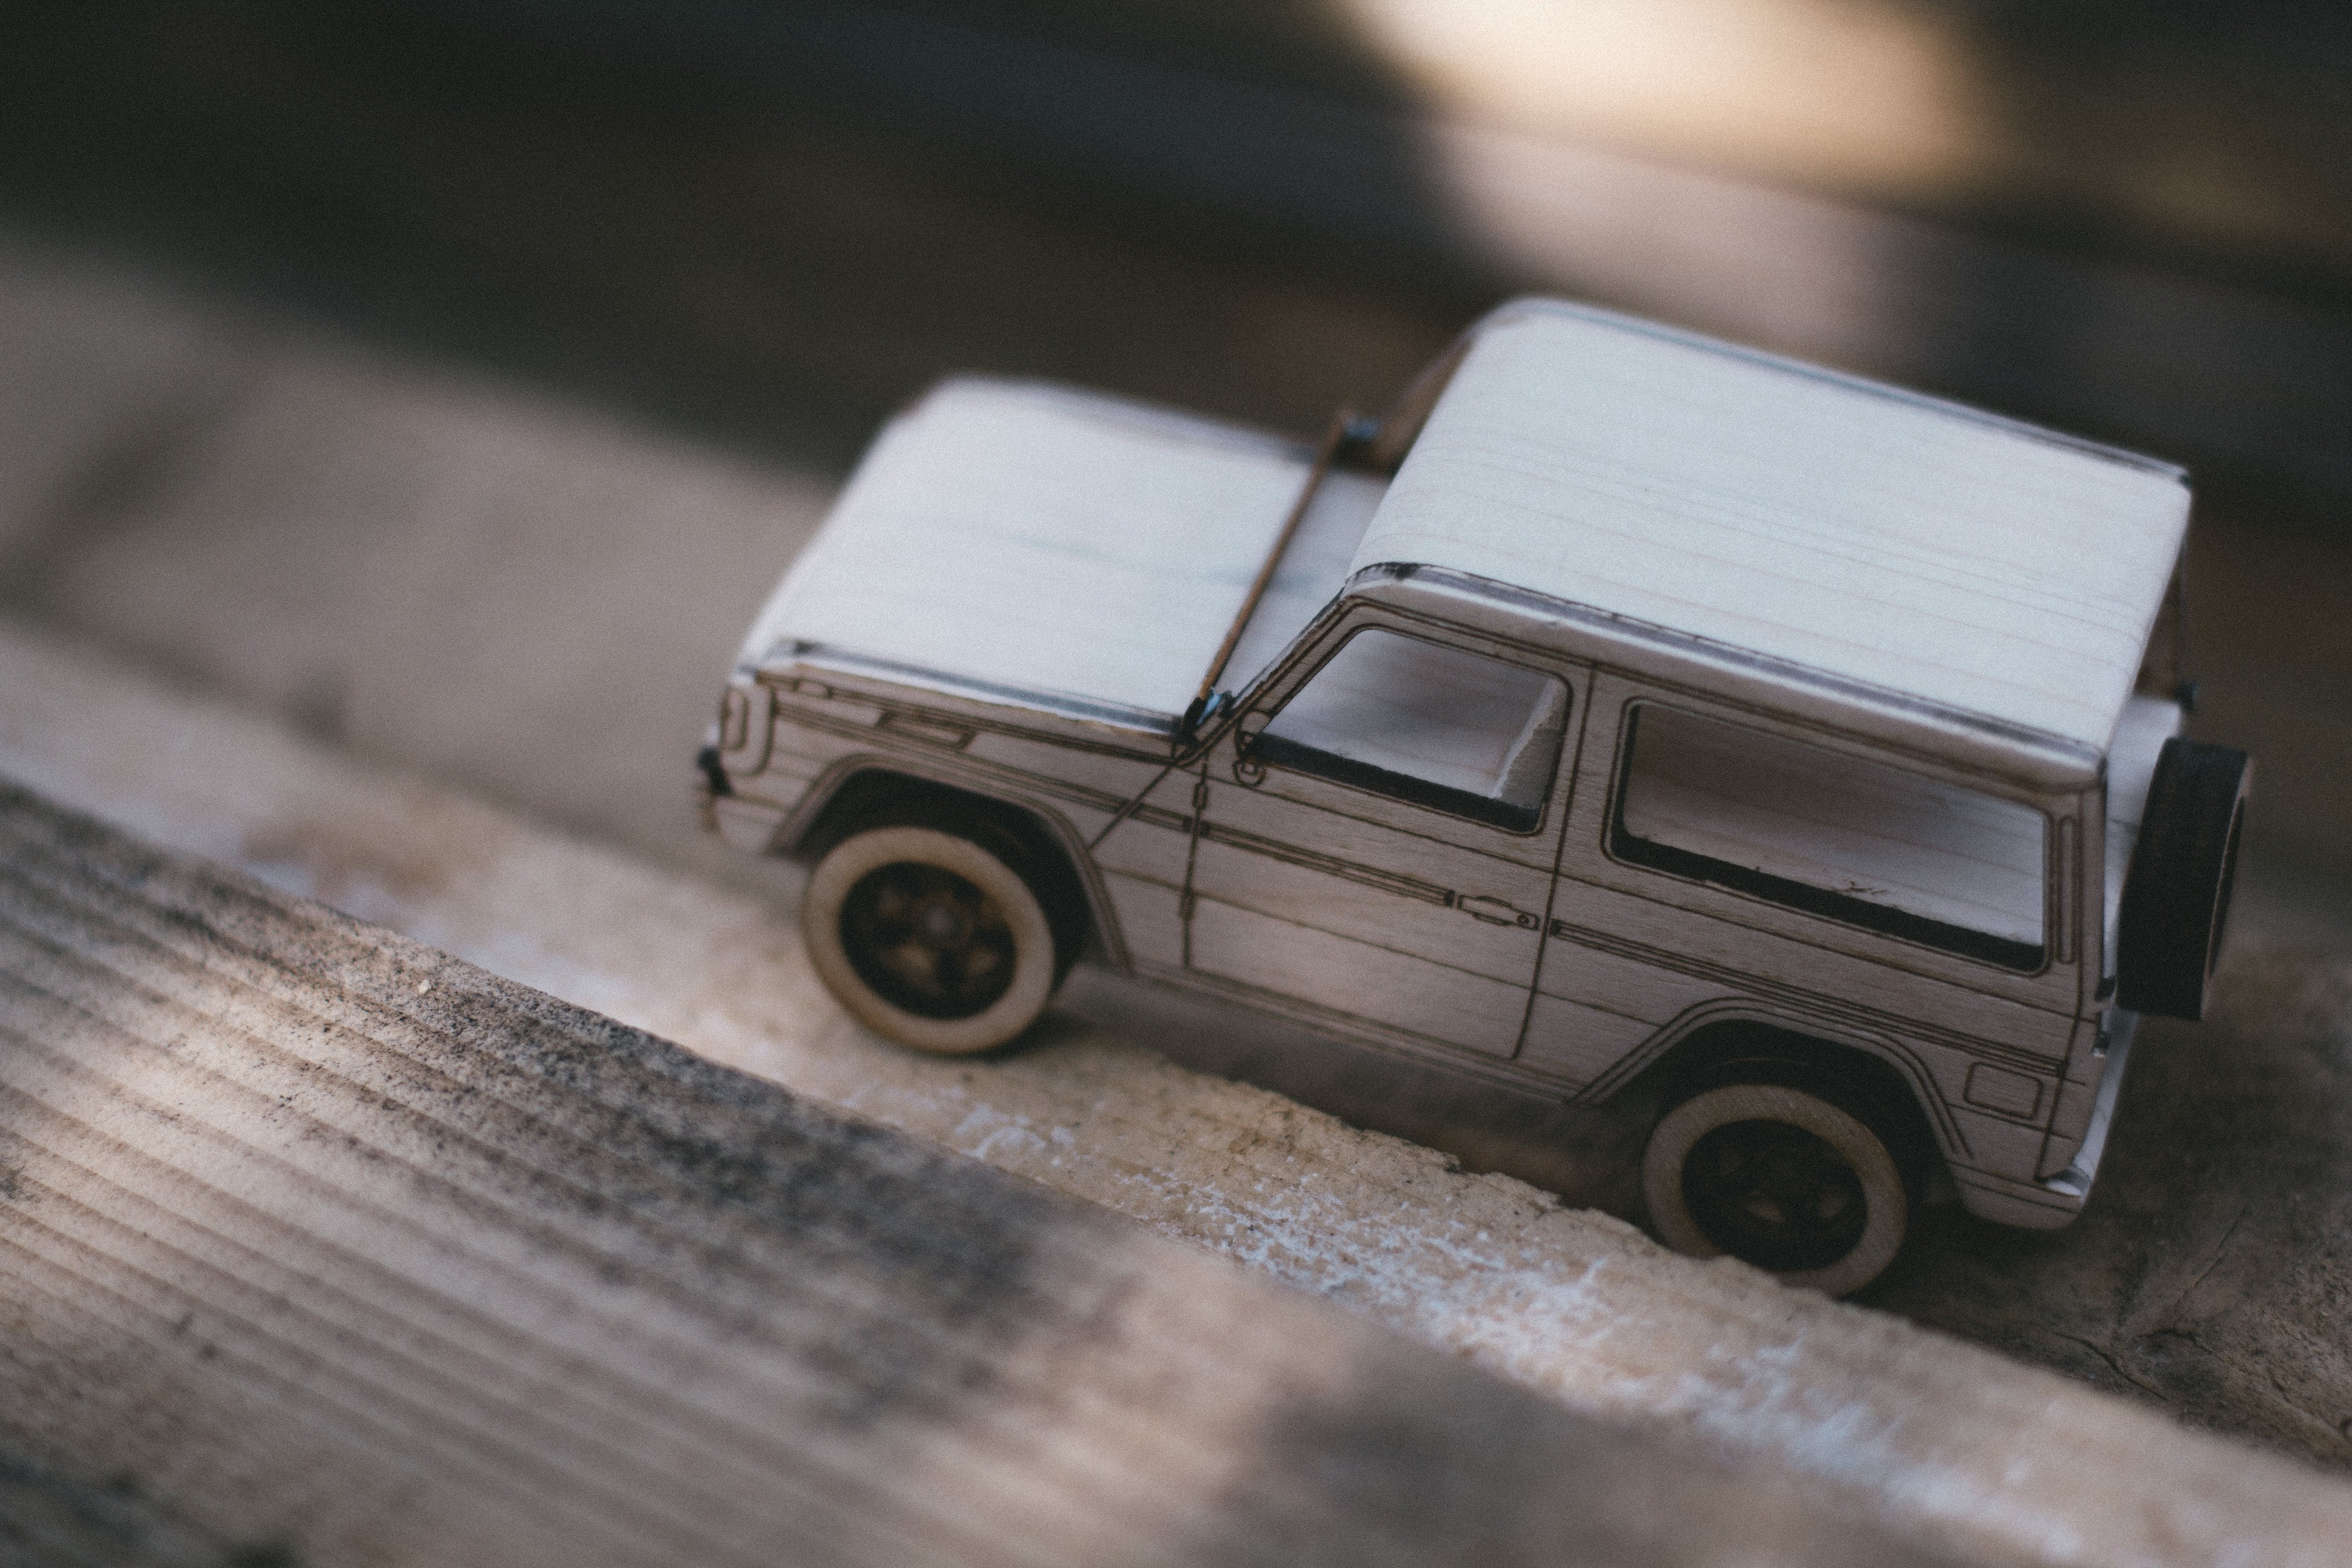 Free stock photo of 4x4, car, car model, children toys